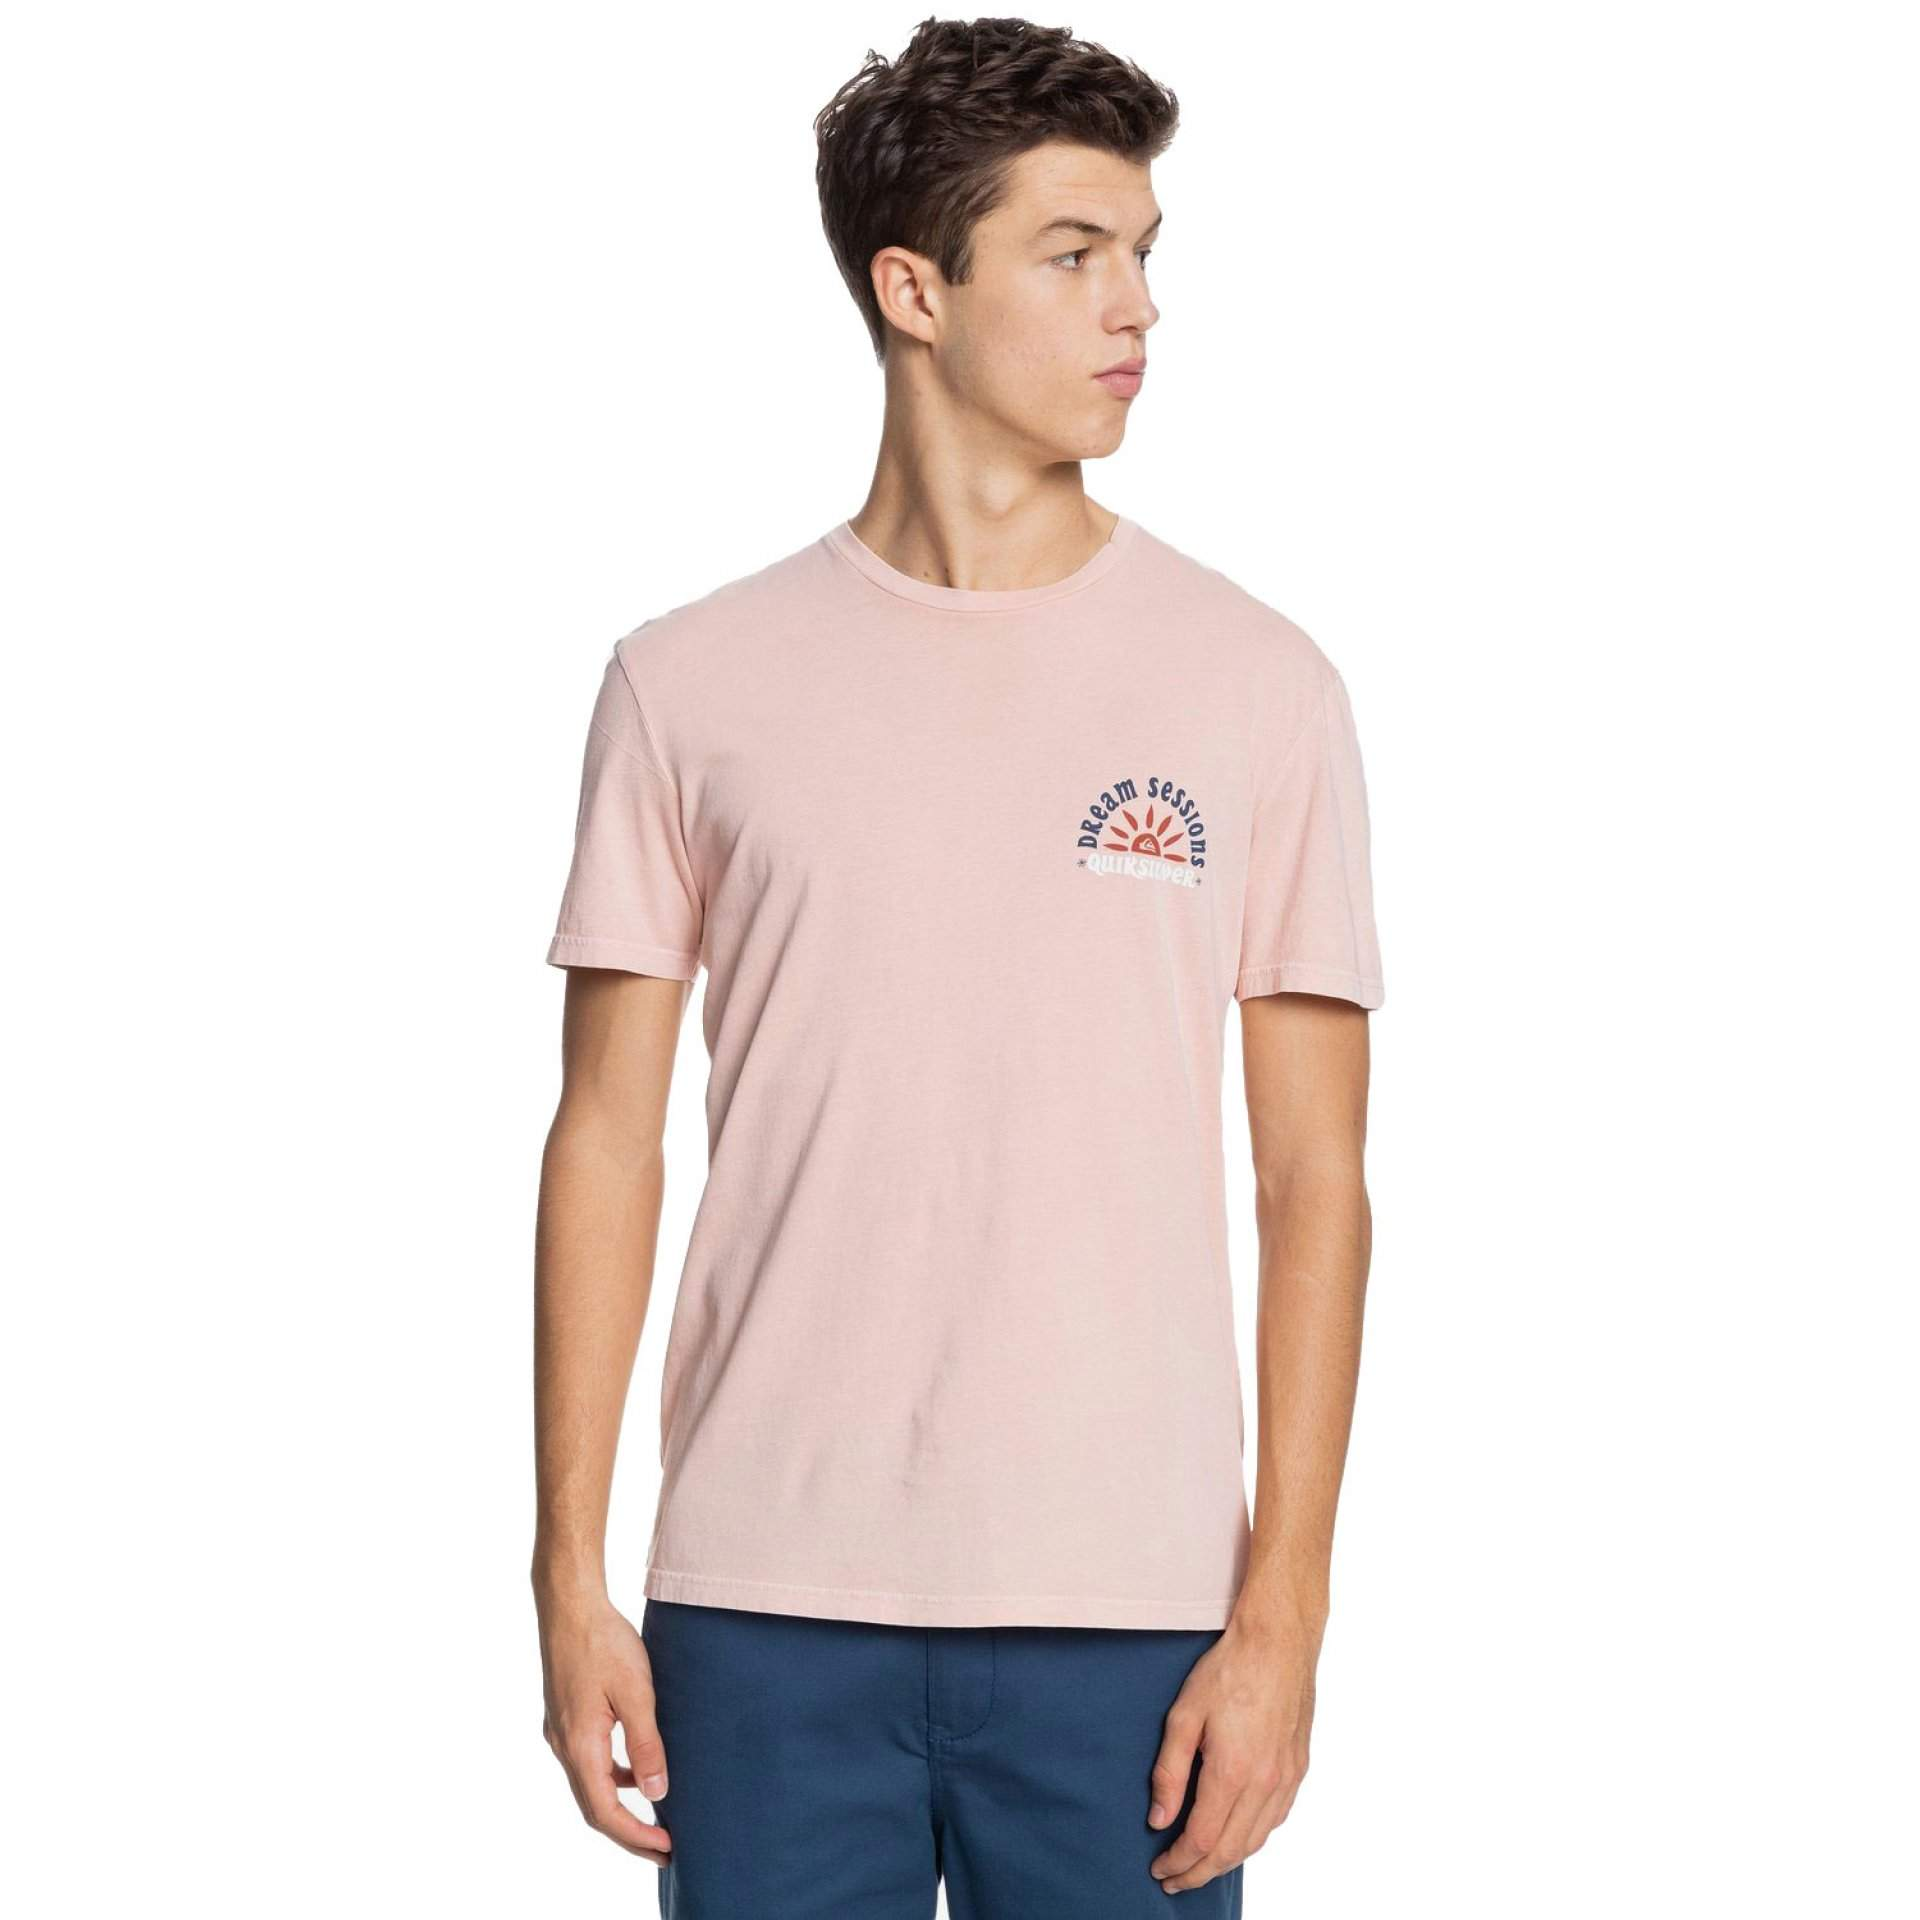 T-SHIRT QUIKSILVER DREAM SESSIONS EQYZT06364 MISTY ROSE MGY0